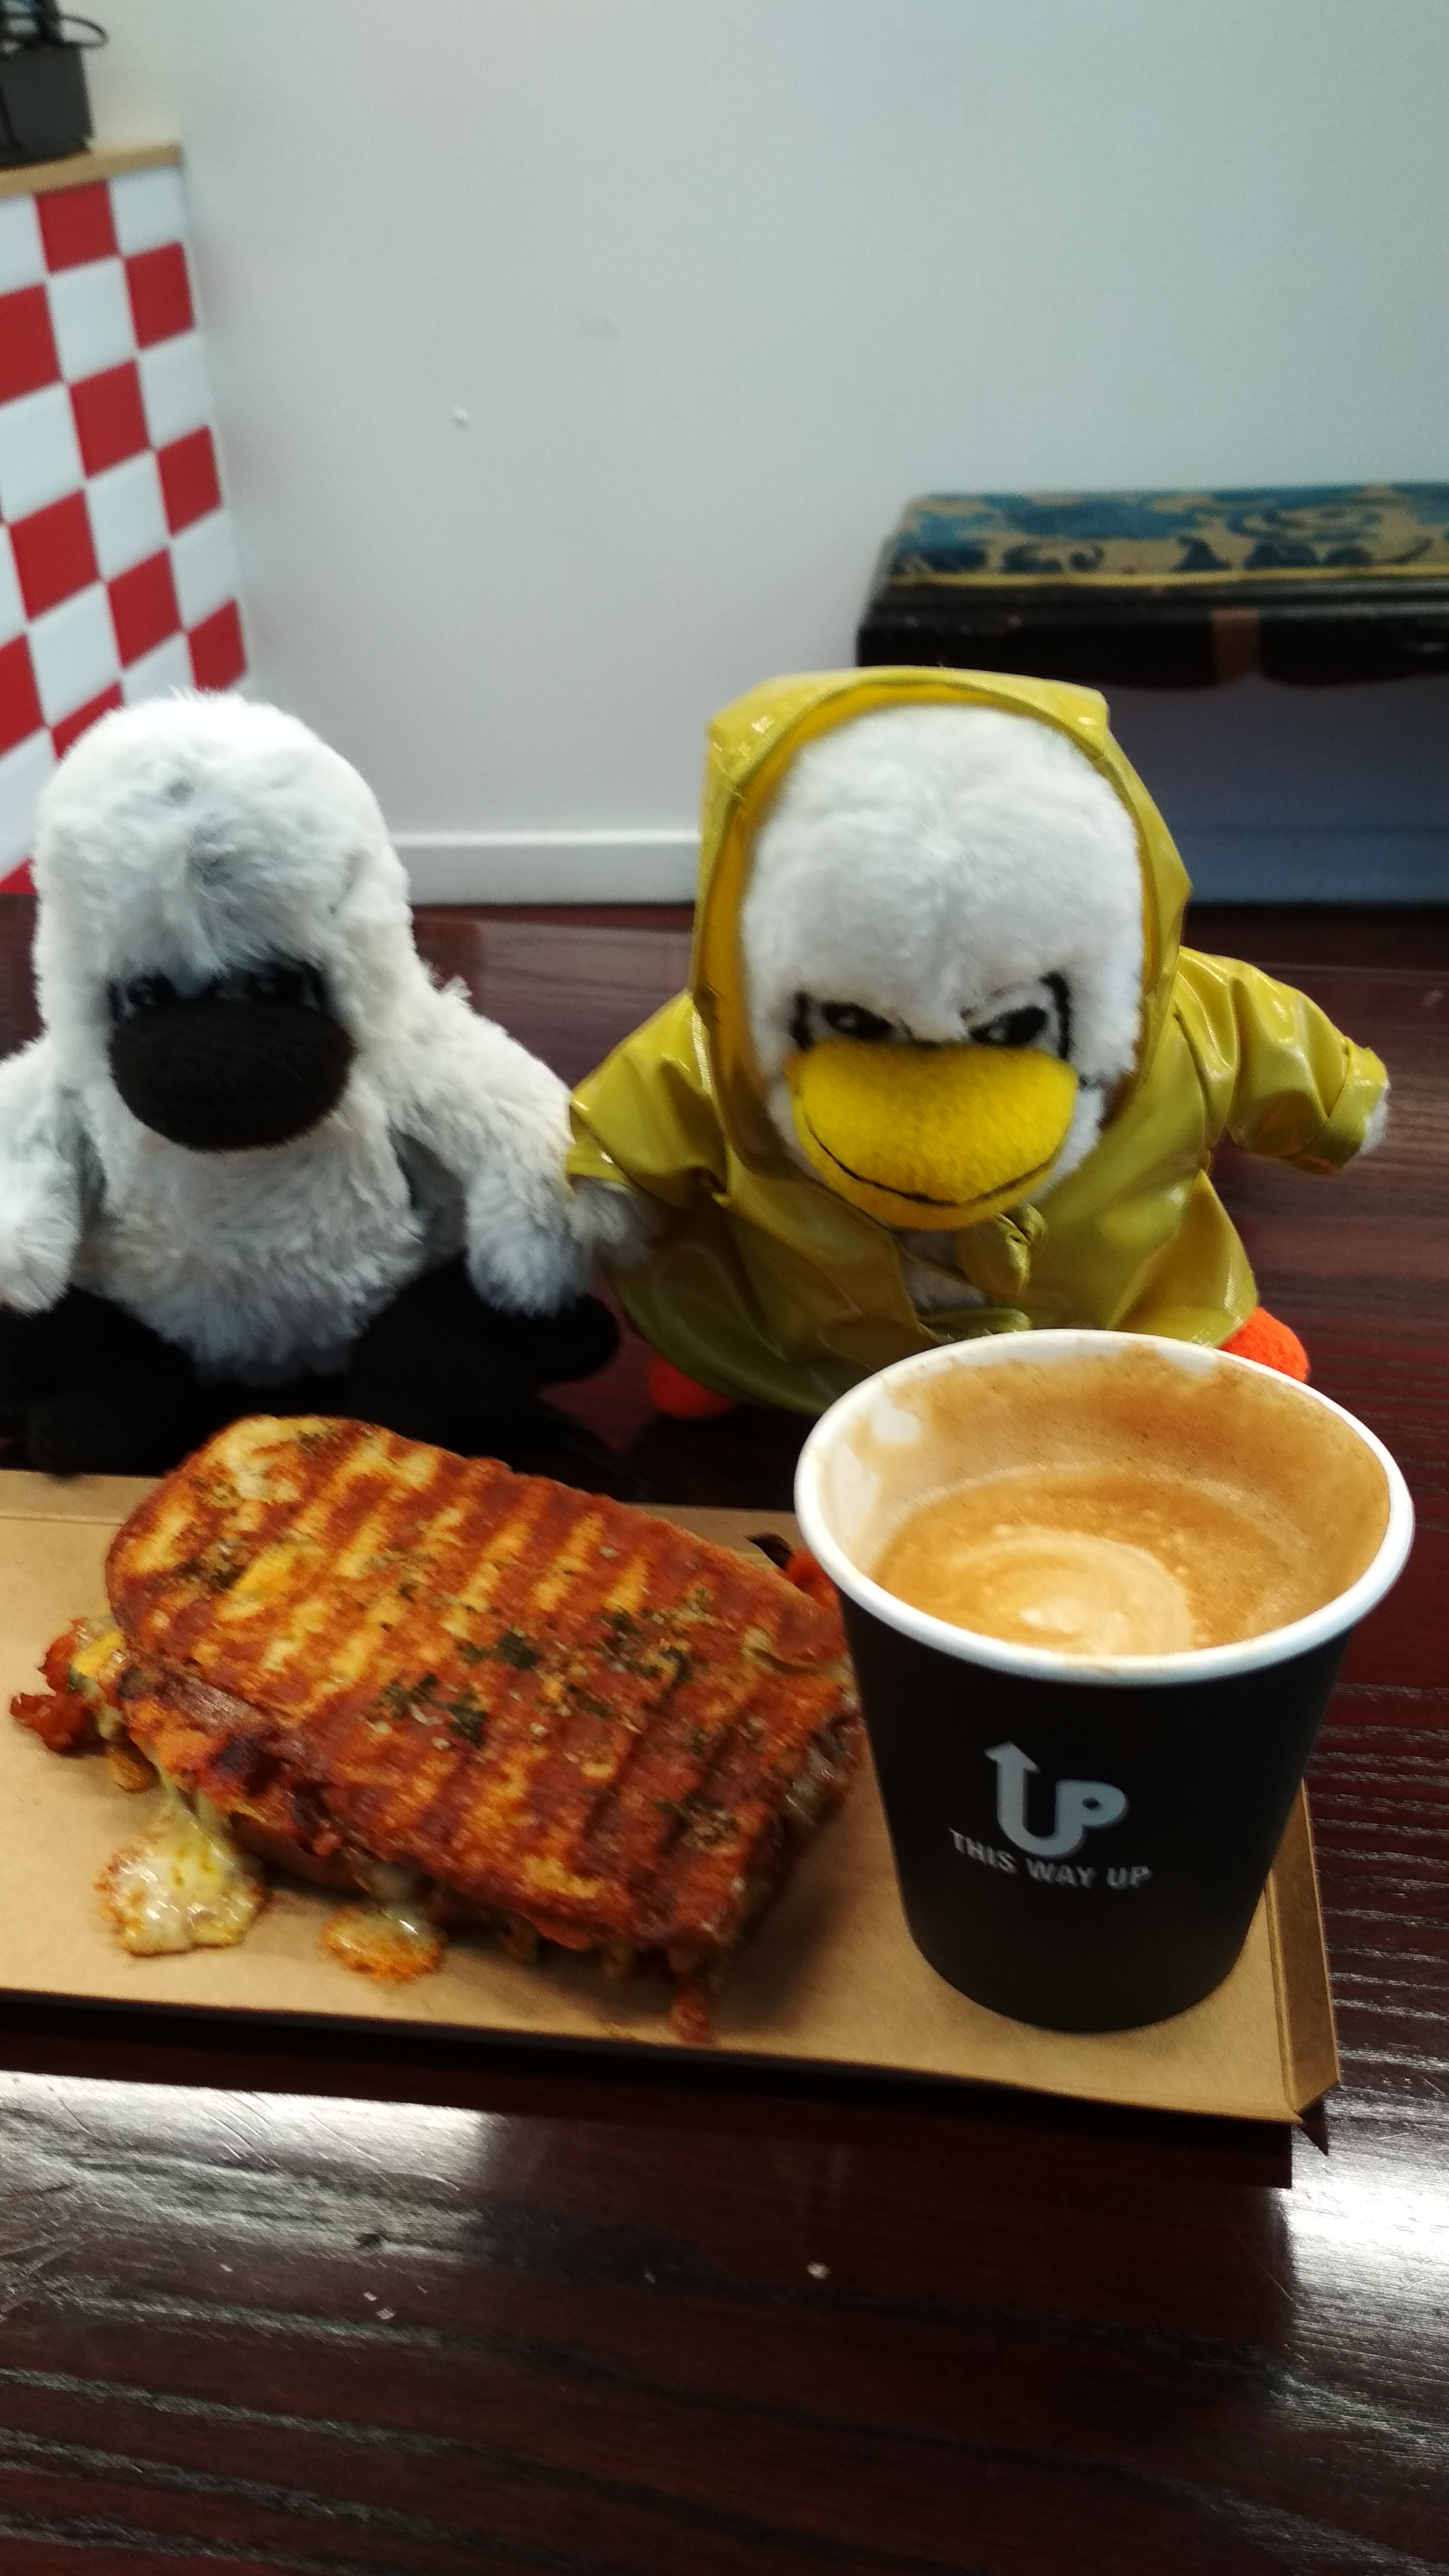 Toastie from Hungry Hobos and Coffee from Sabayon